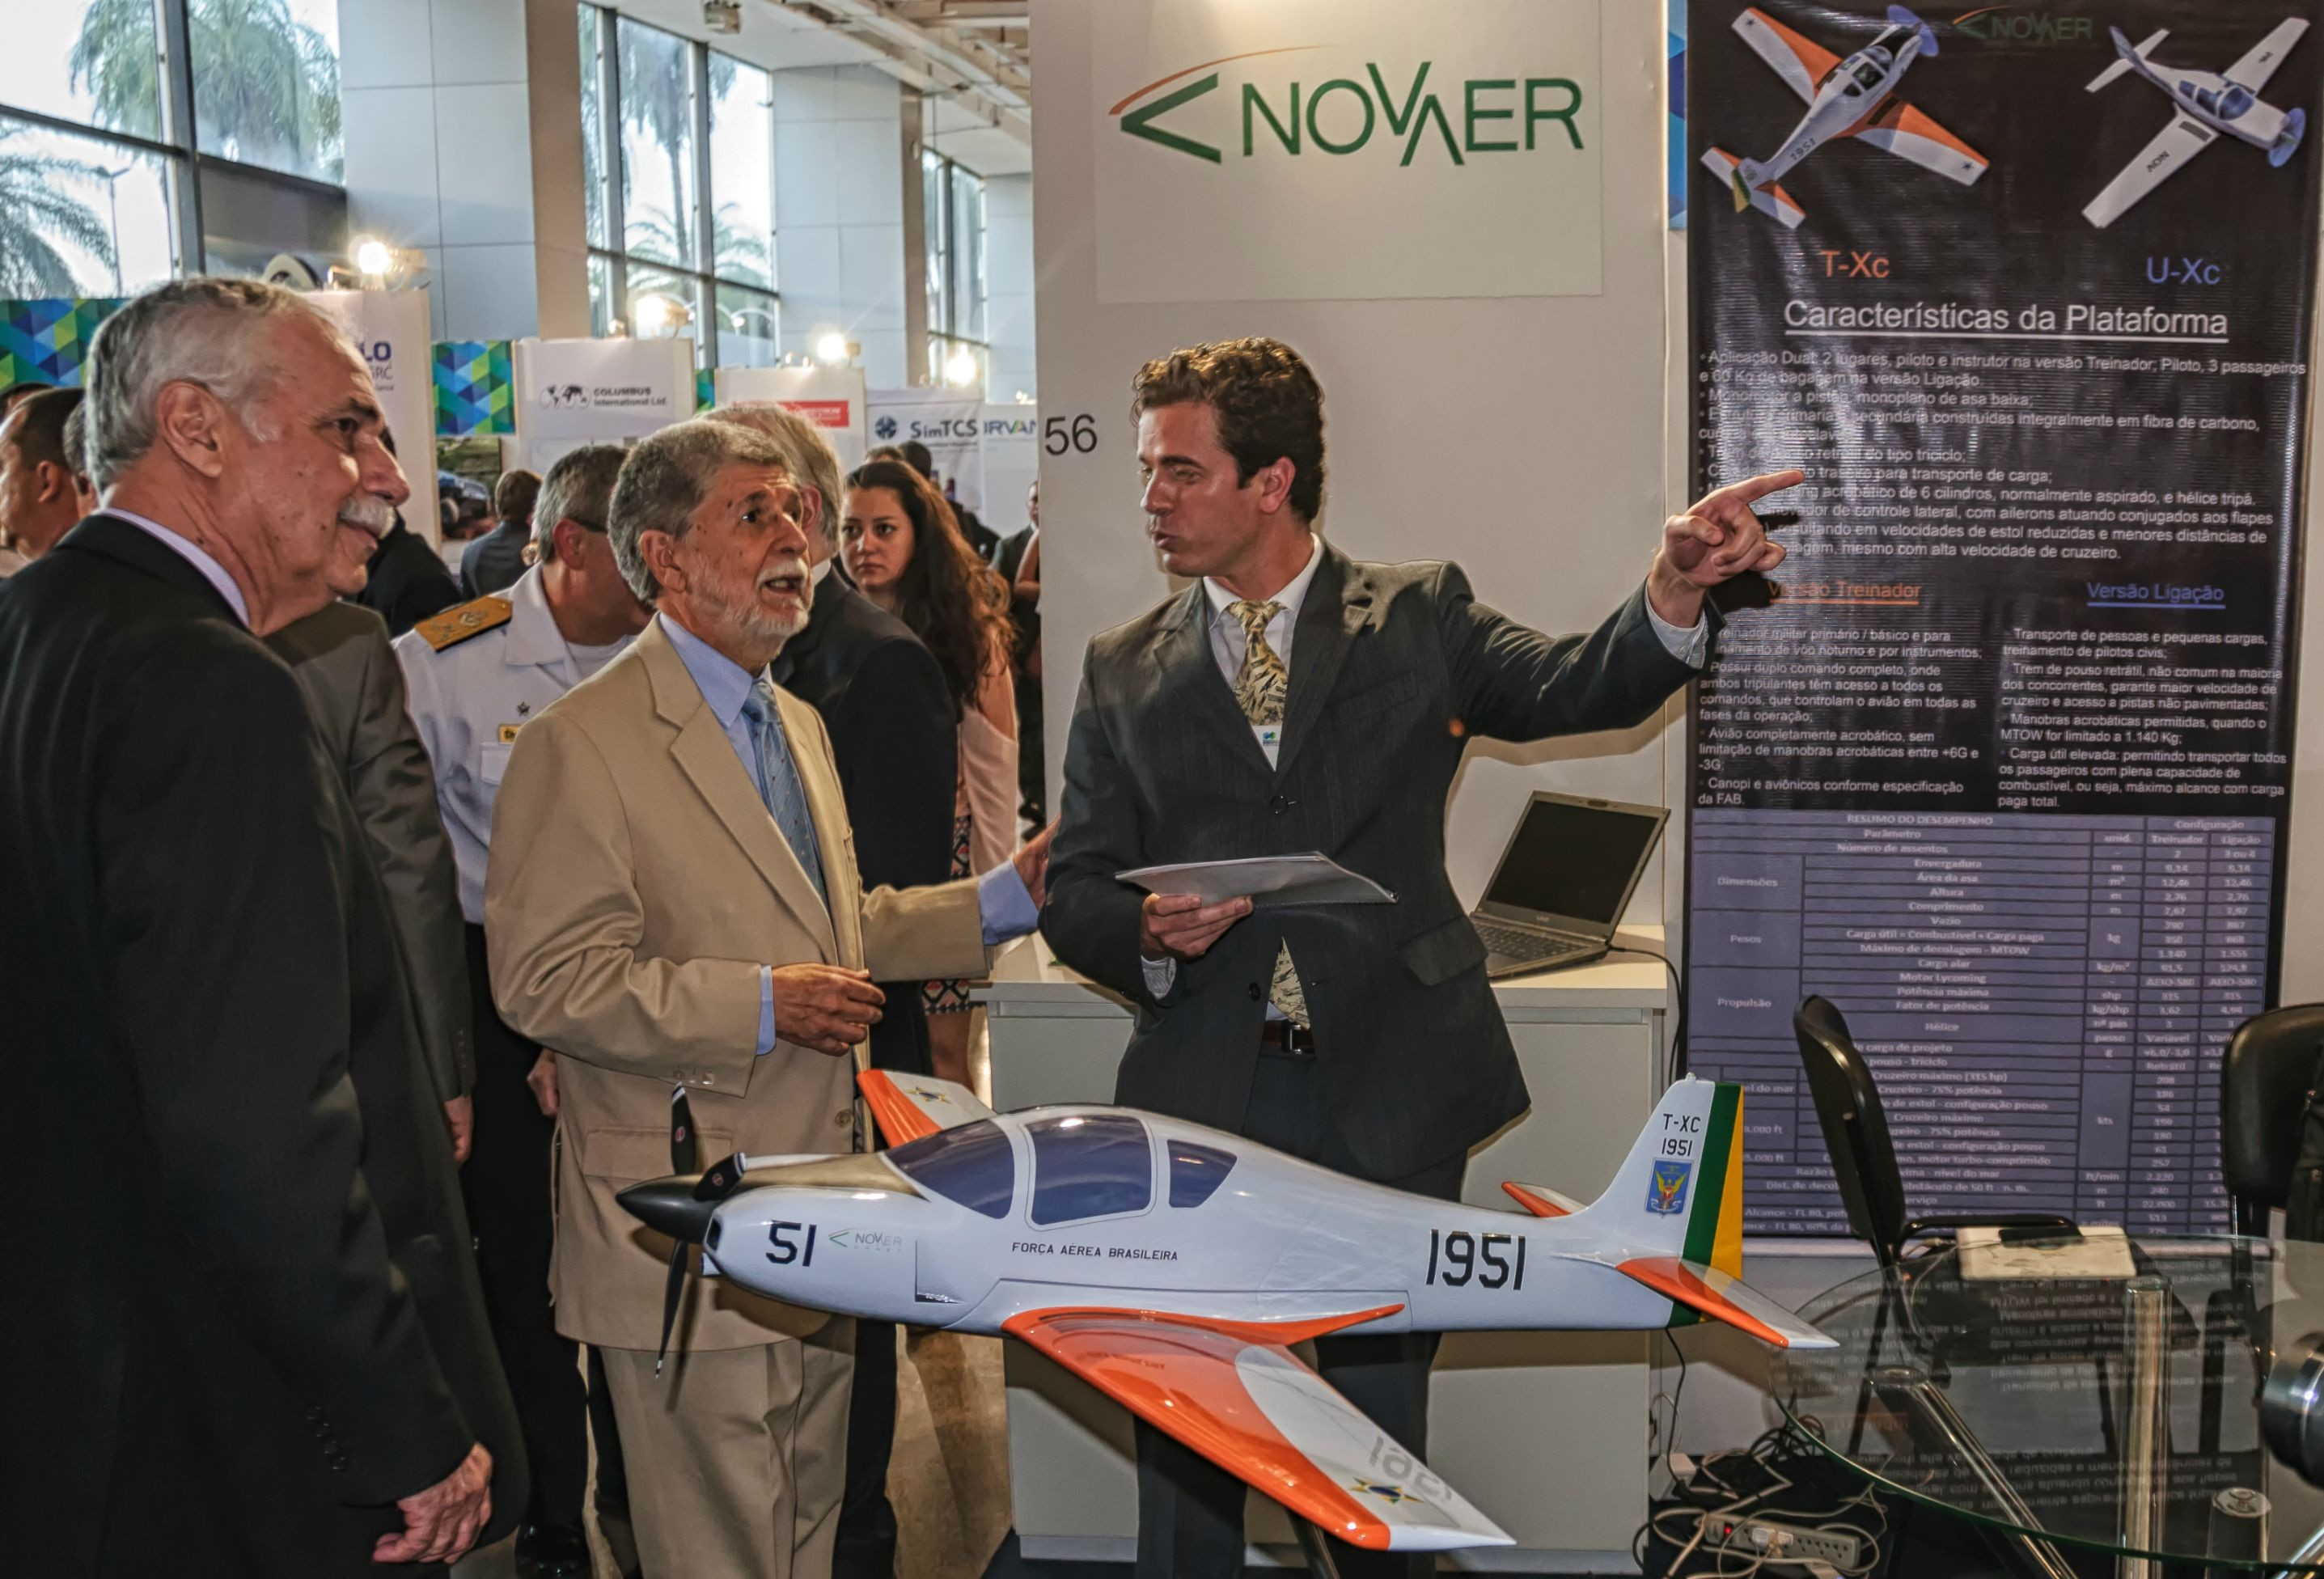 Brazil's Defense Minister visits Novaer's stand at the 3rd Brazil Defense Expo